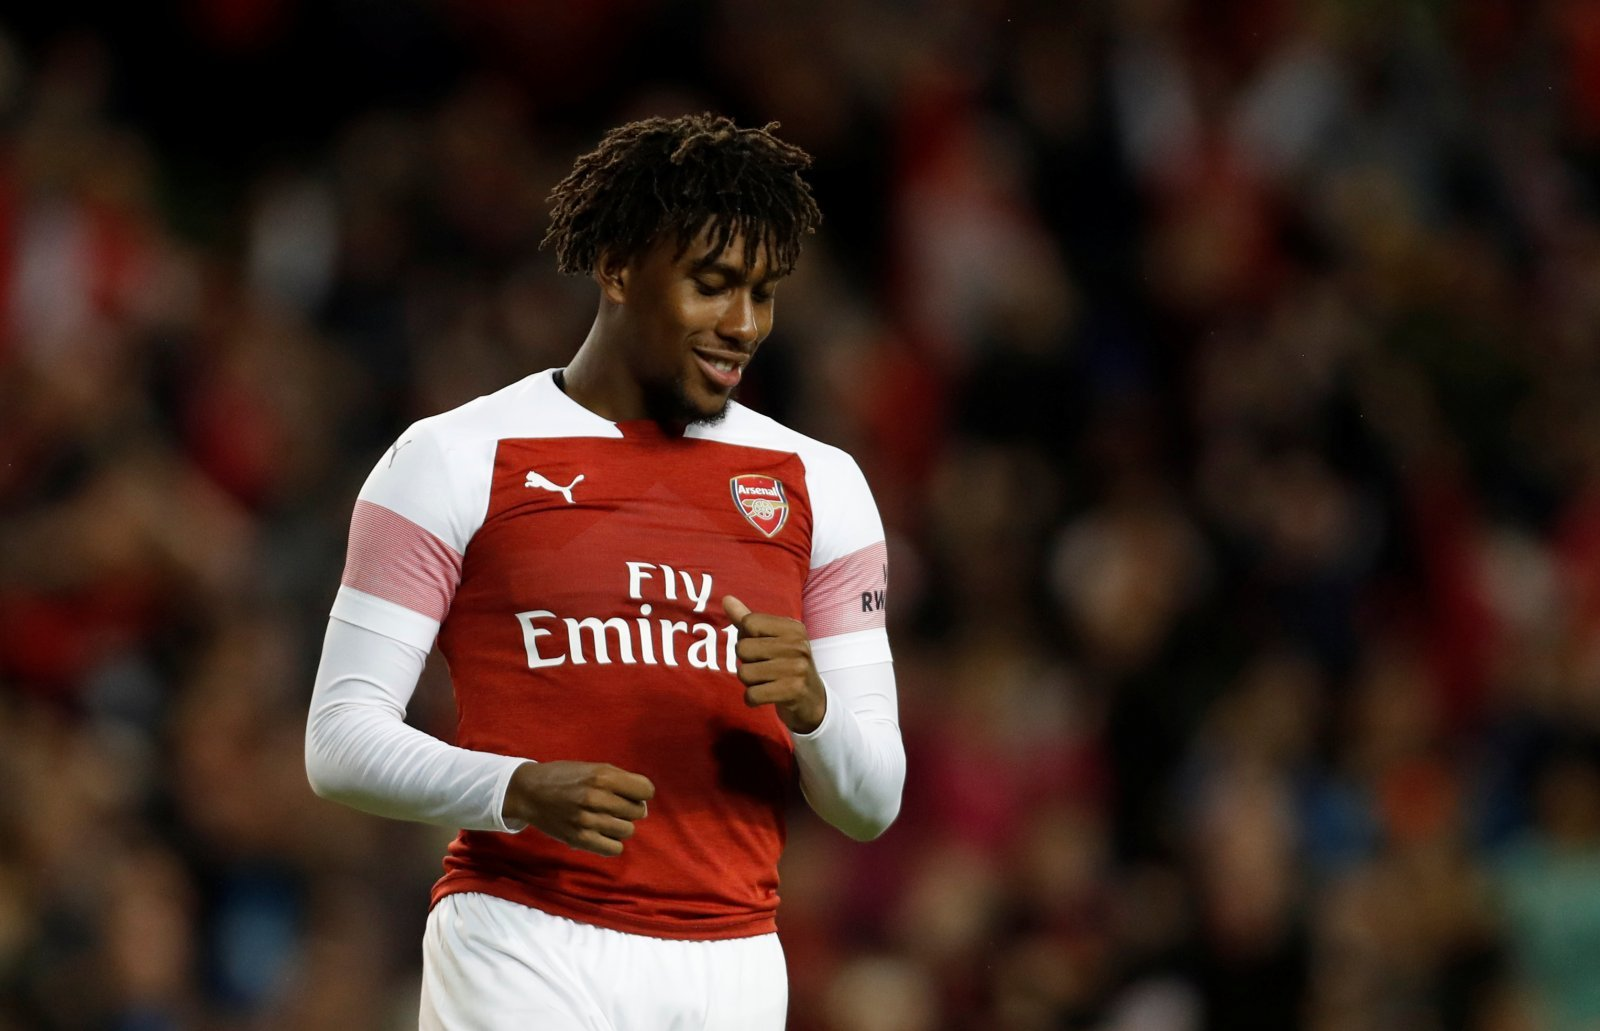 Arsenal fans take to Twitter to slam out-of-form Iwobi